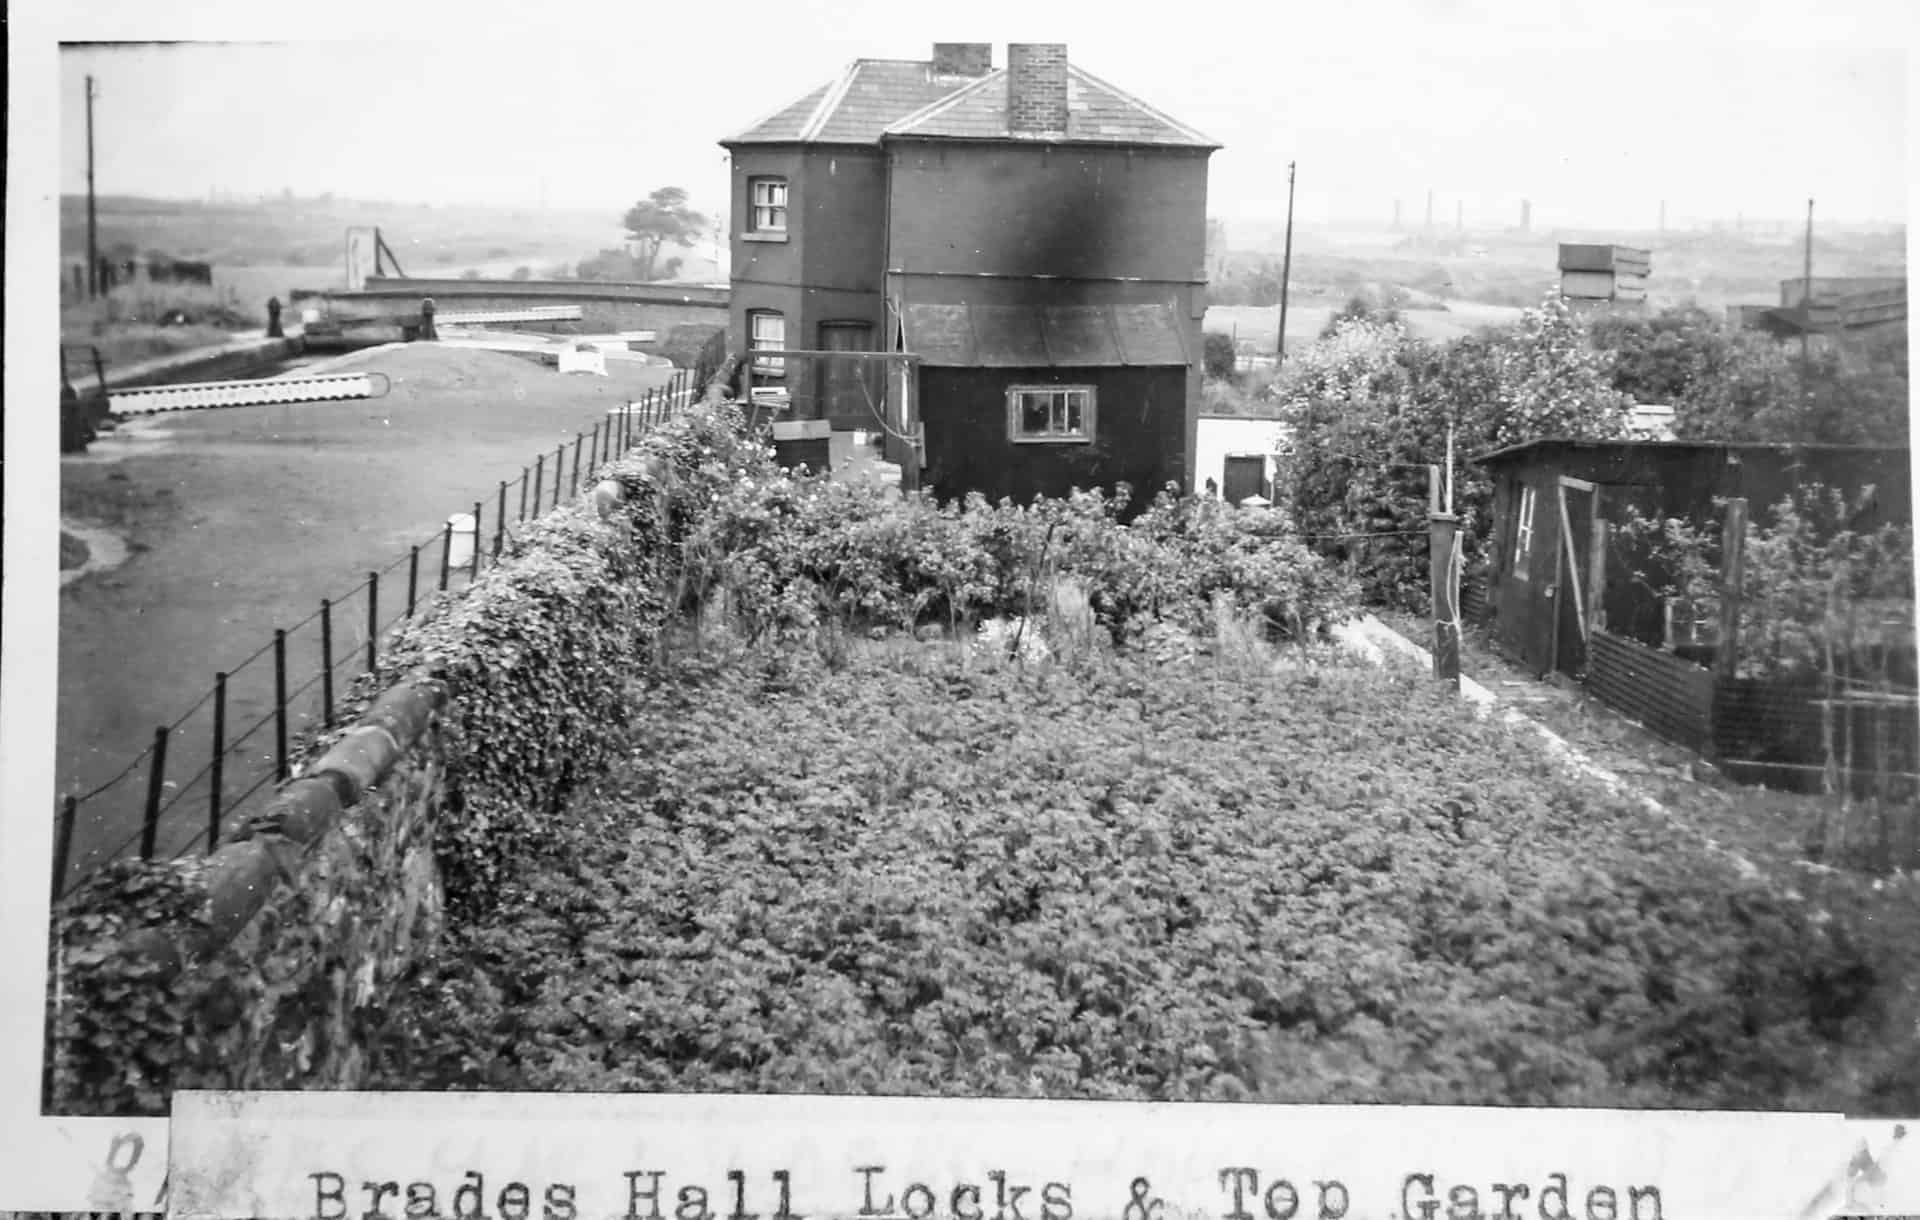 Brades Hall Locks and top garden, c 1950s